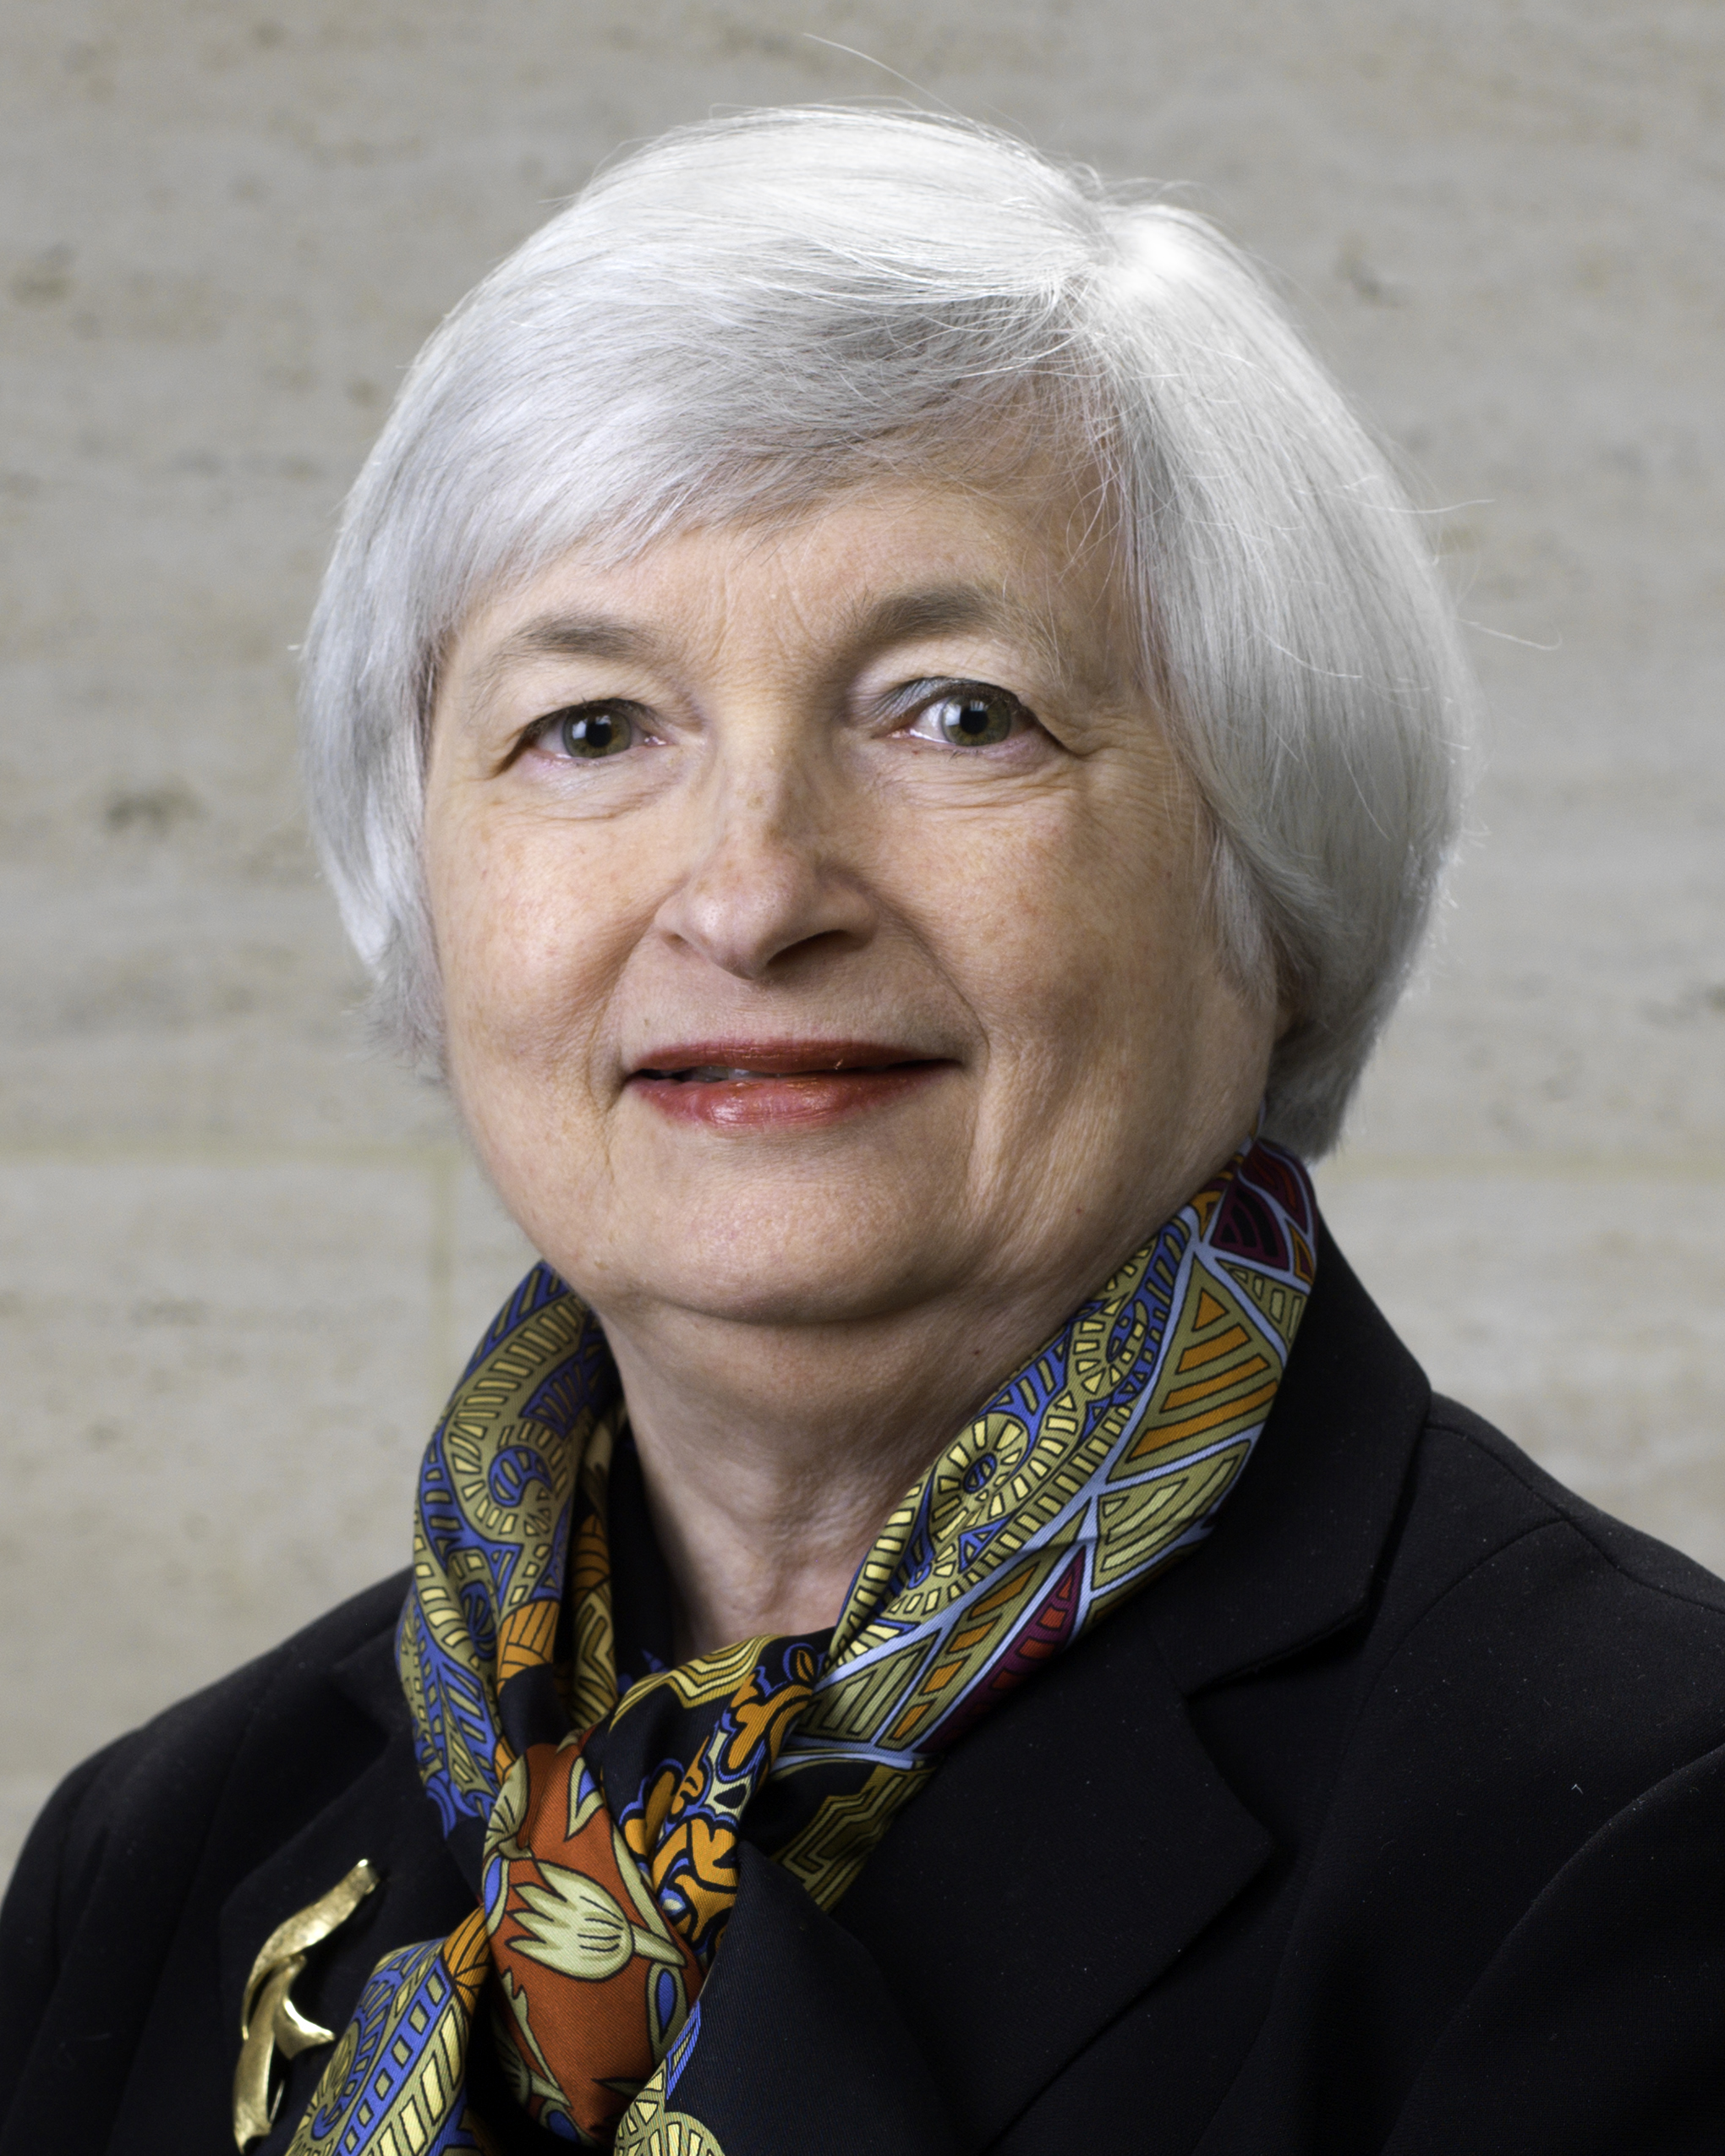 janet yellen wikipedia janet yellen wikipedia